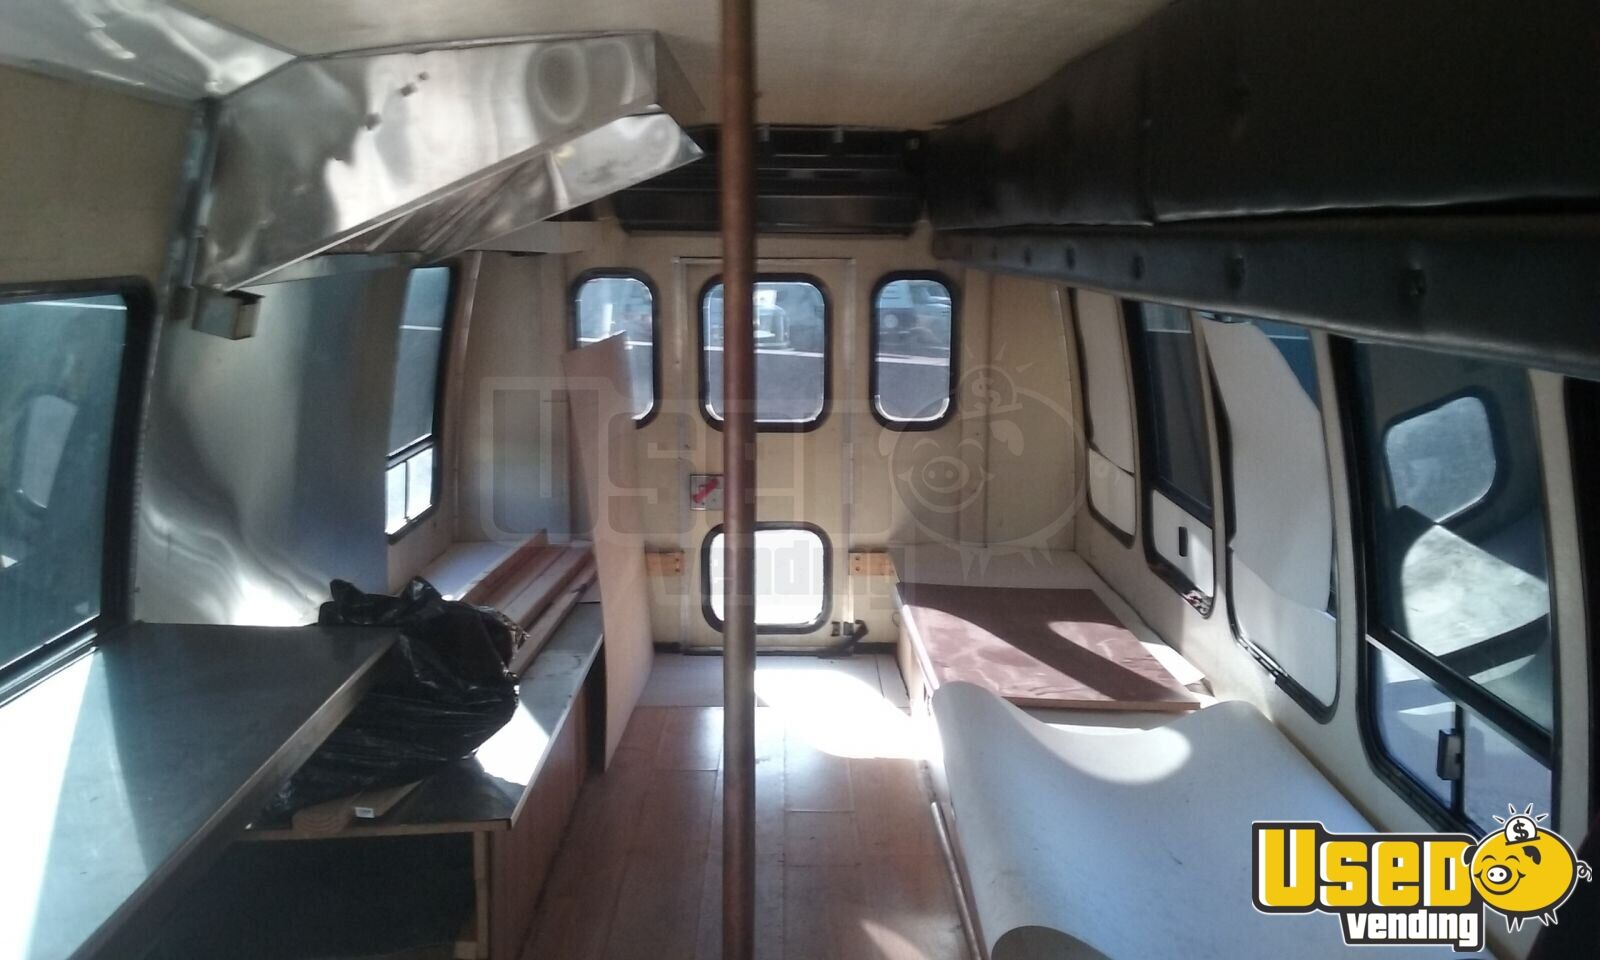 1995 Ford Econ Lt318 All-purpose Food Truck Stainless Steel Wall Covers Arizona Diesel Engine for Sale - 5